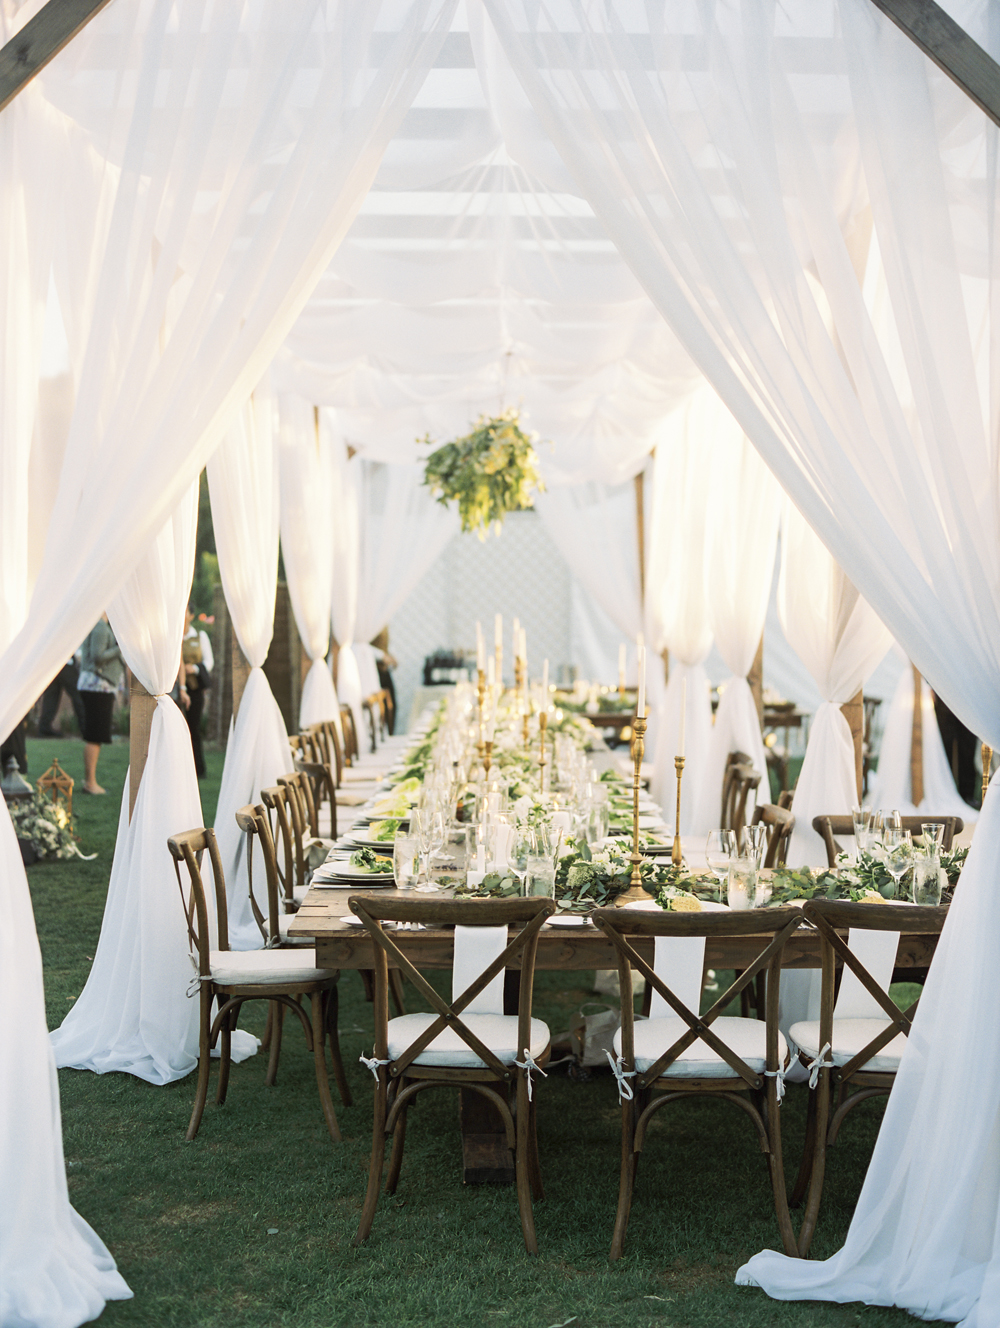 Wedding Ideas: No Tablecloths on Reception Tables - Inside Weddings